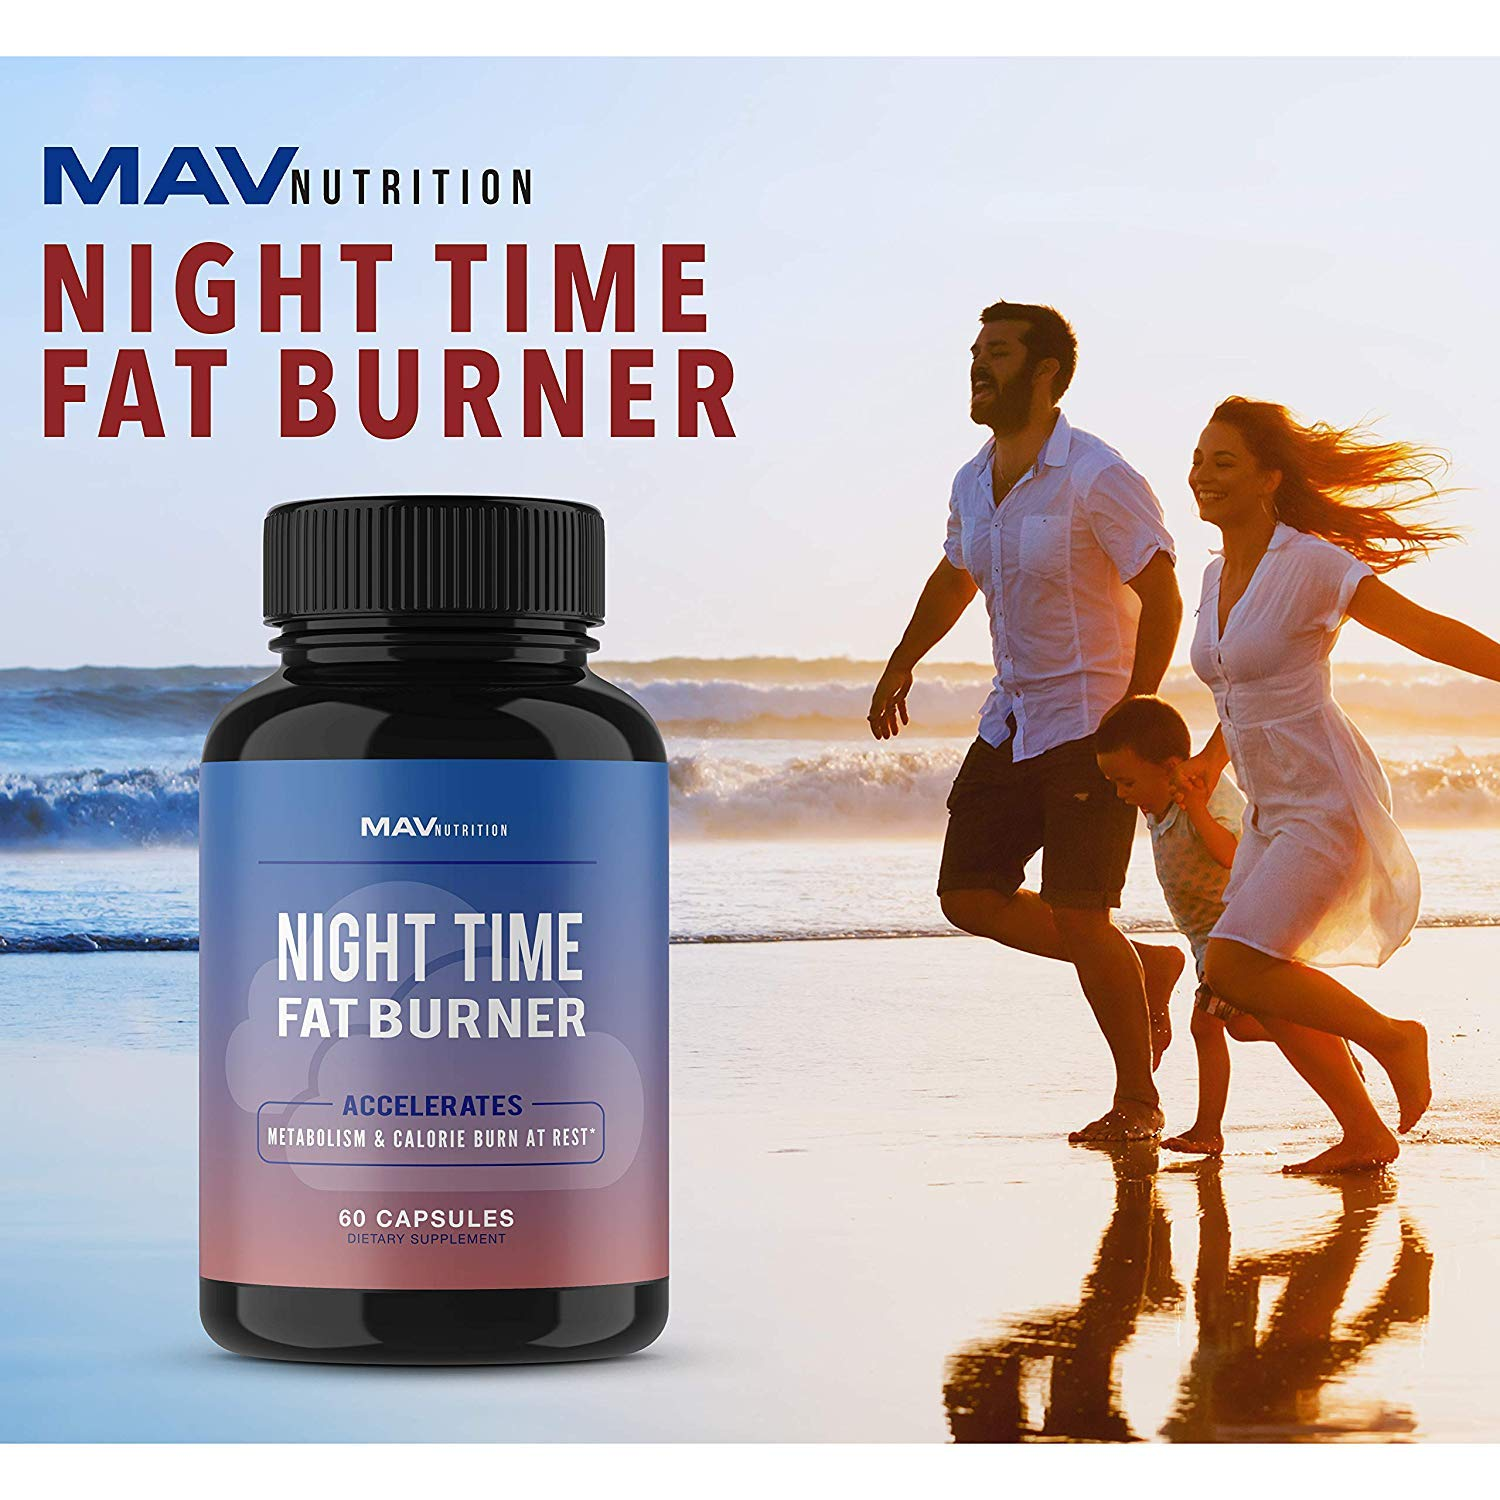 Night Time Fat Burner Weight Loss Pills Formulated to Burn Fat and Aid in Suppressing Appetite, Supports a Restful Night Sleep While Increasing Metabolism Rates and Decreasing Morning Cravings